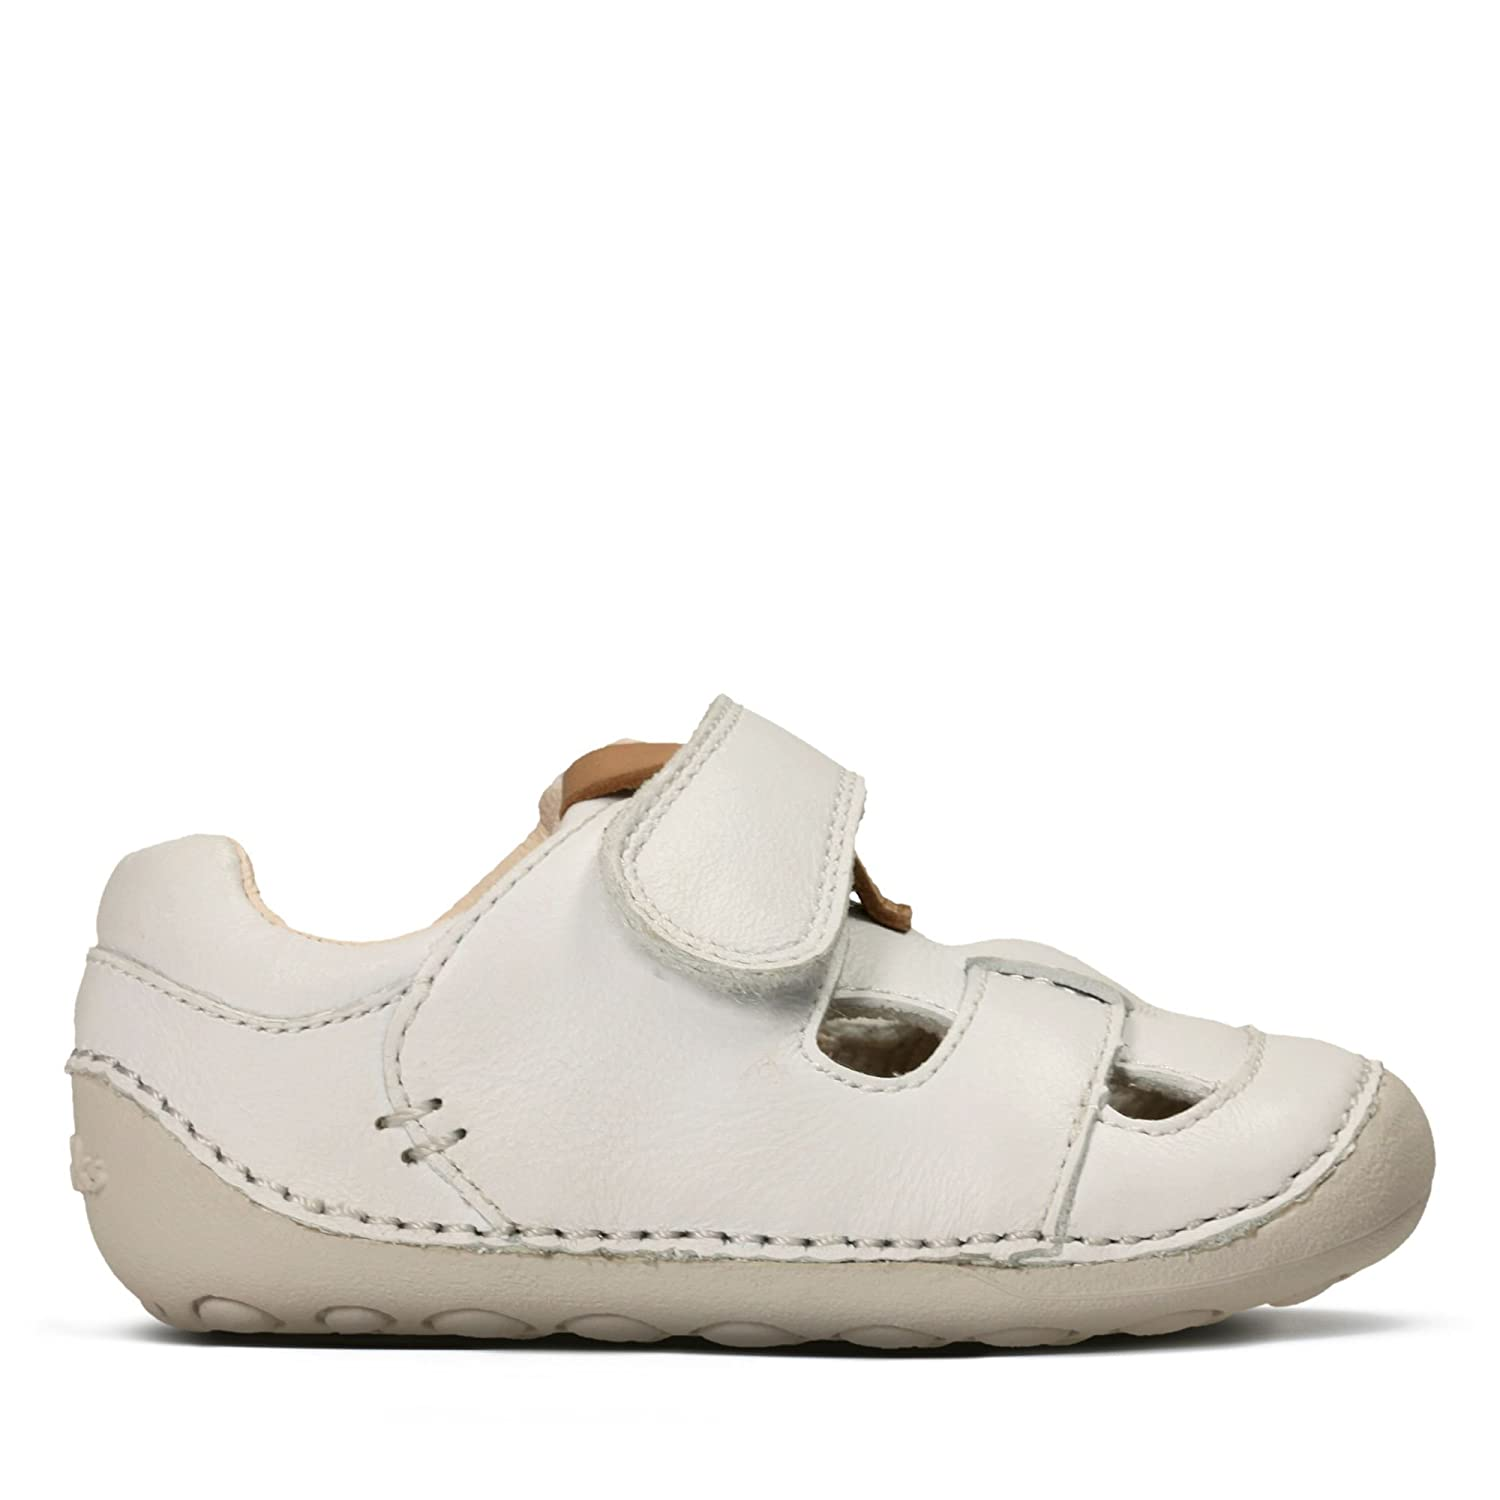 Clarks Girls Casual Shoes Tiny Meadow